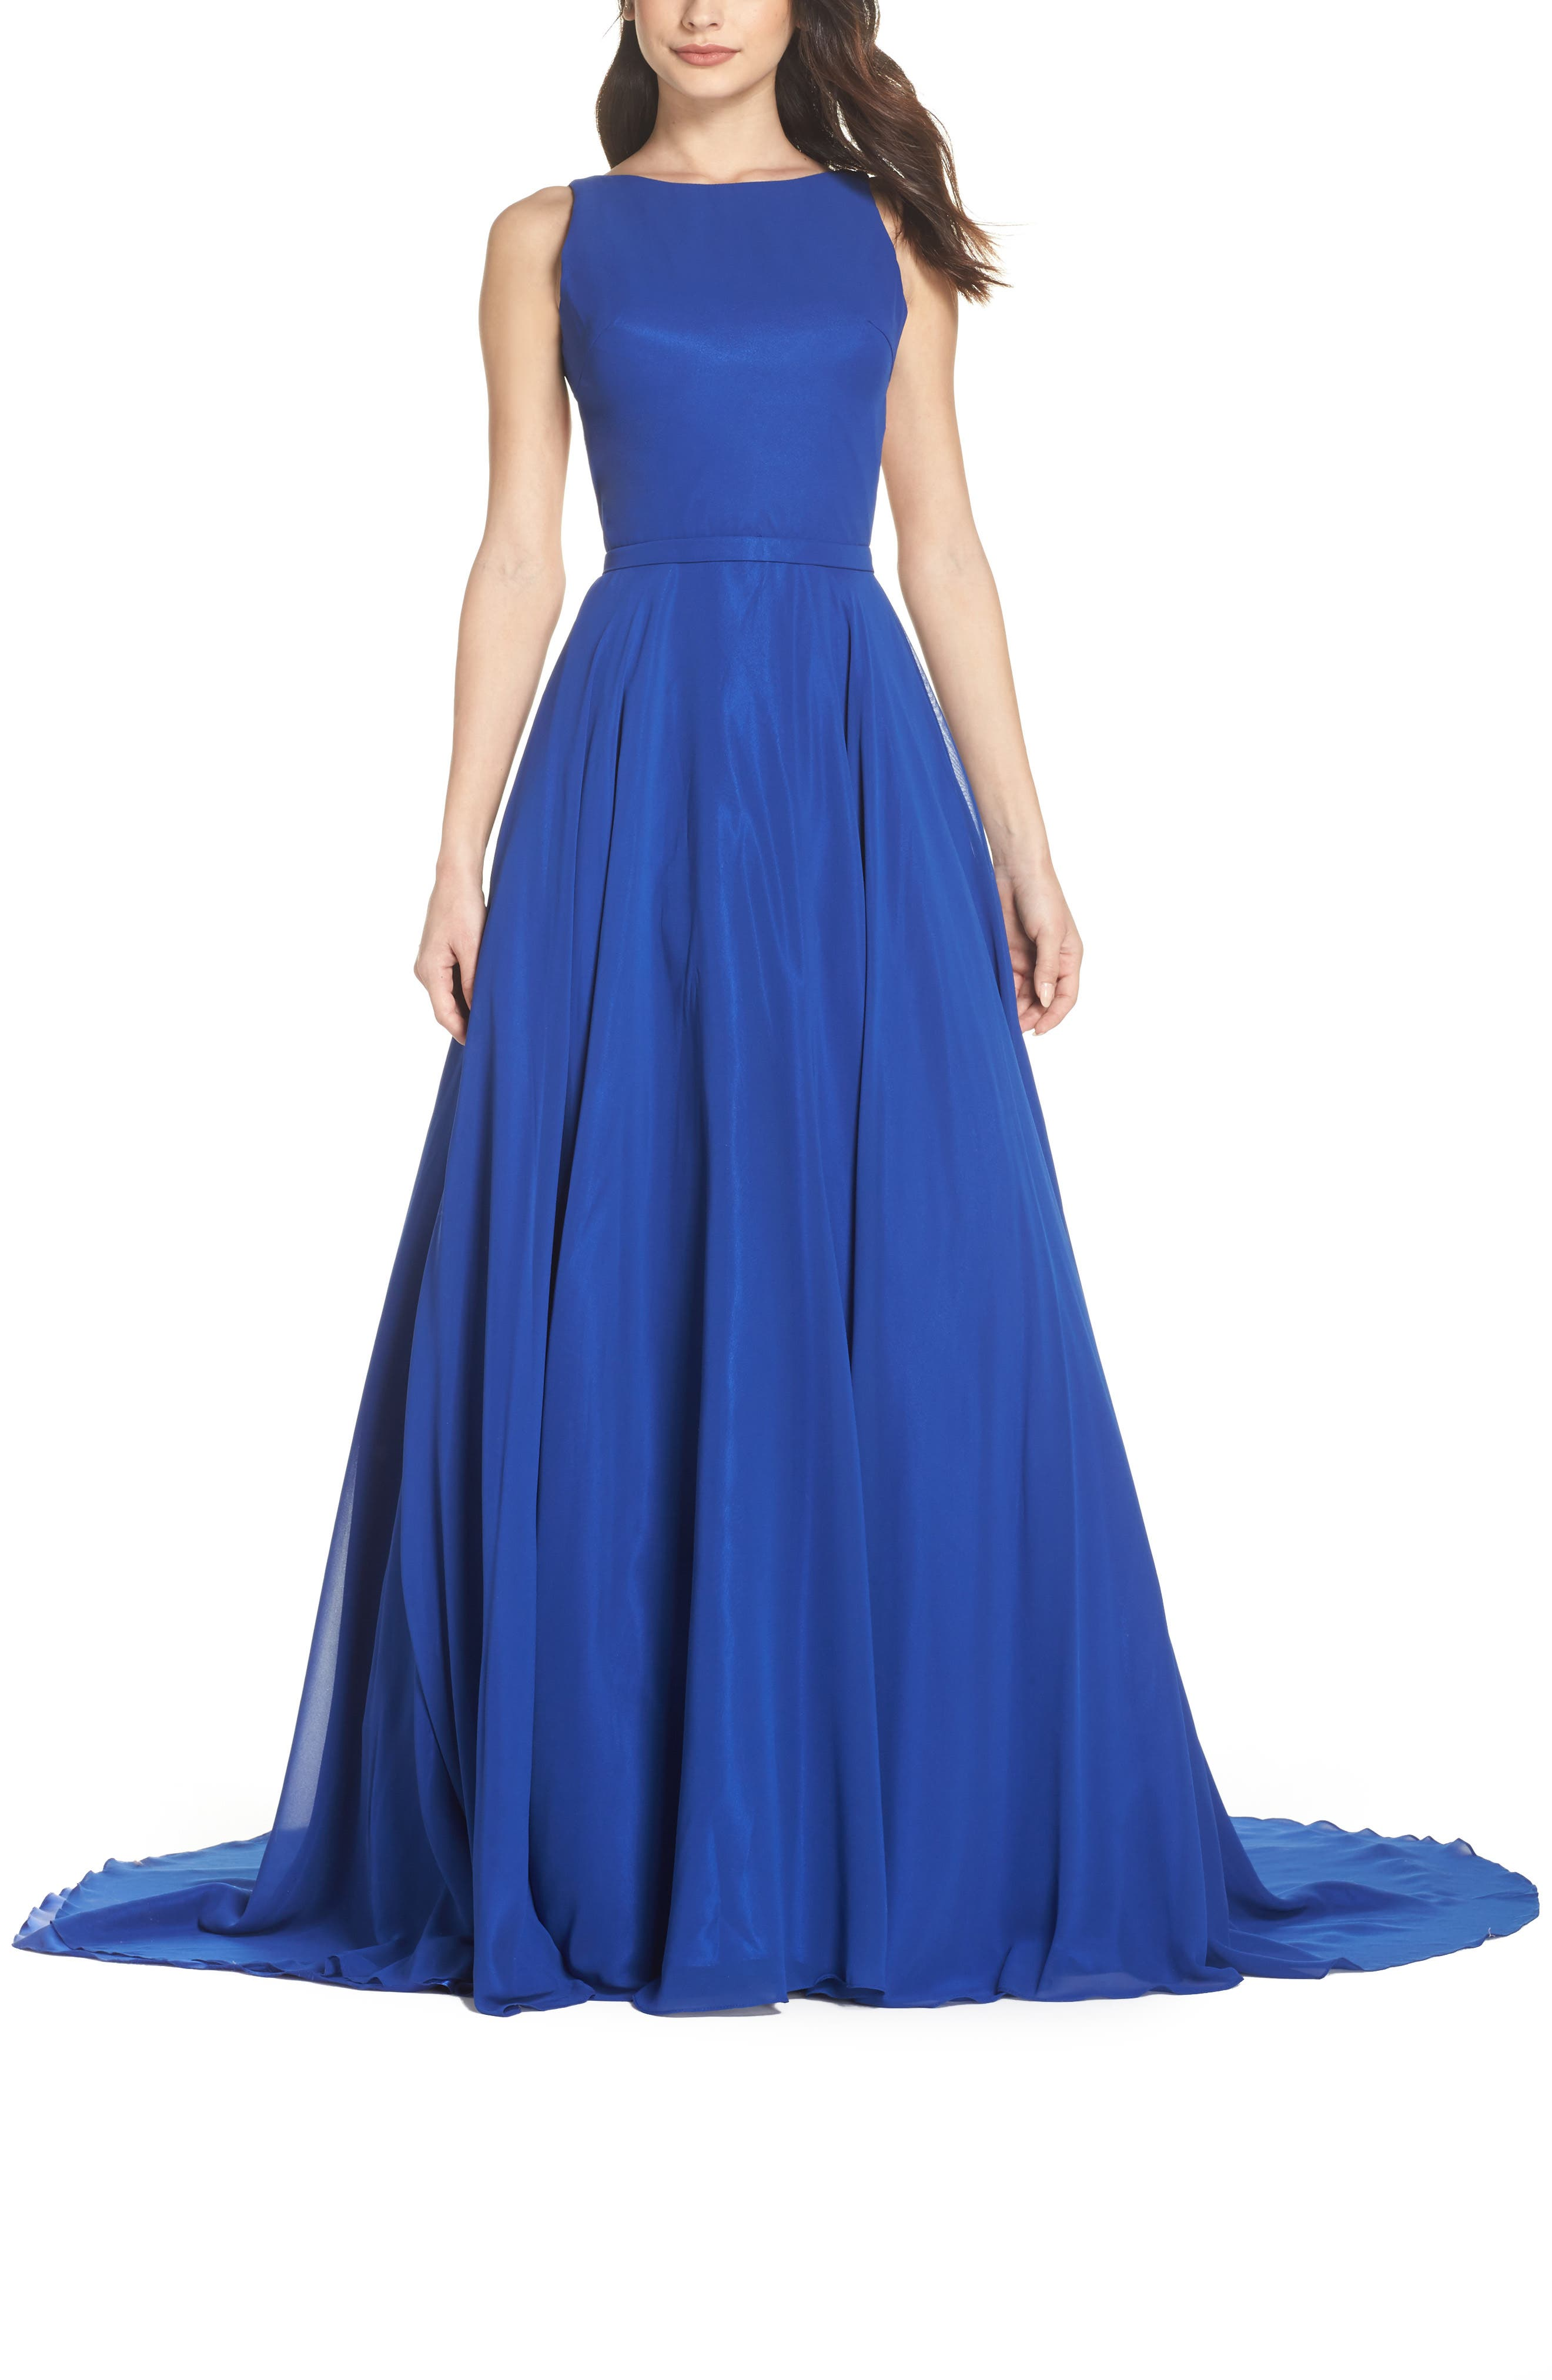 Mac Duggal Bateau Neck Ballgown,                         Main,                         color, 415